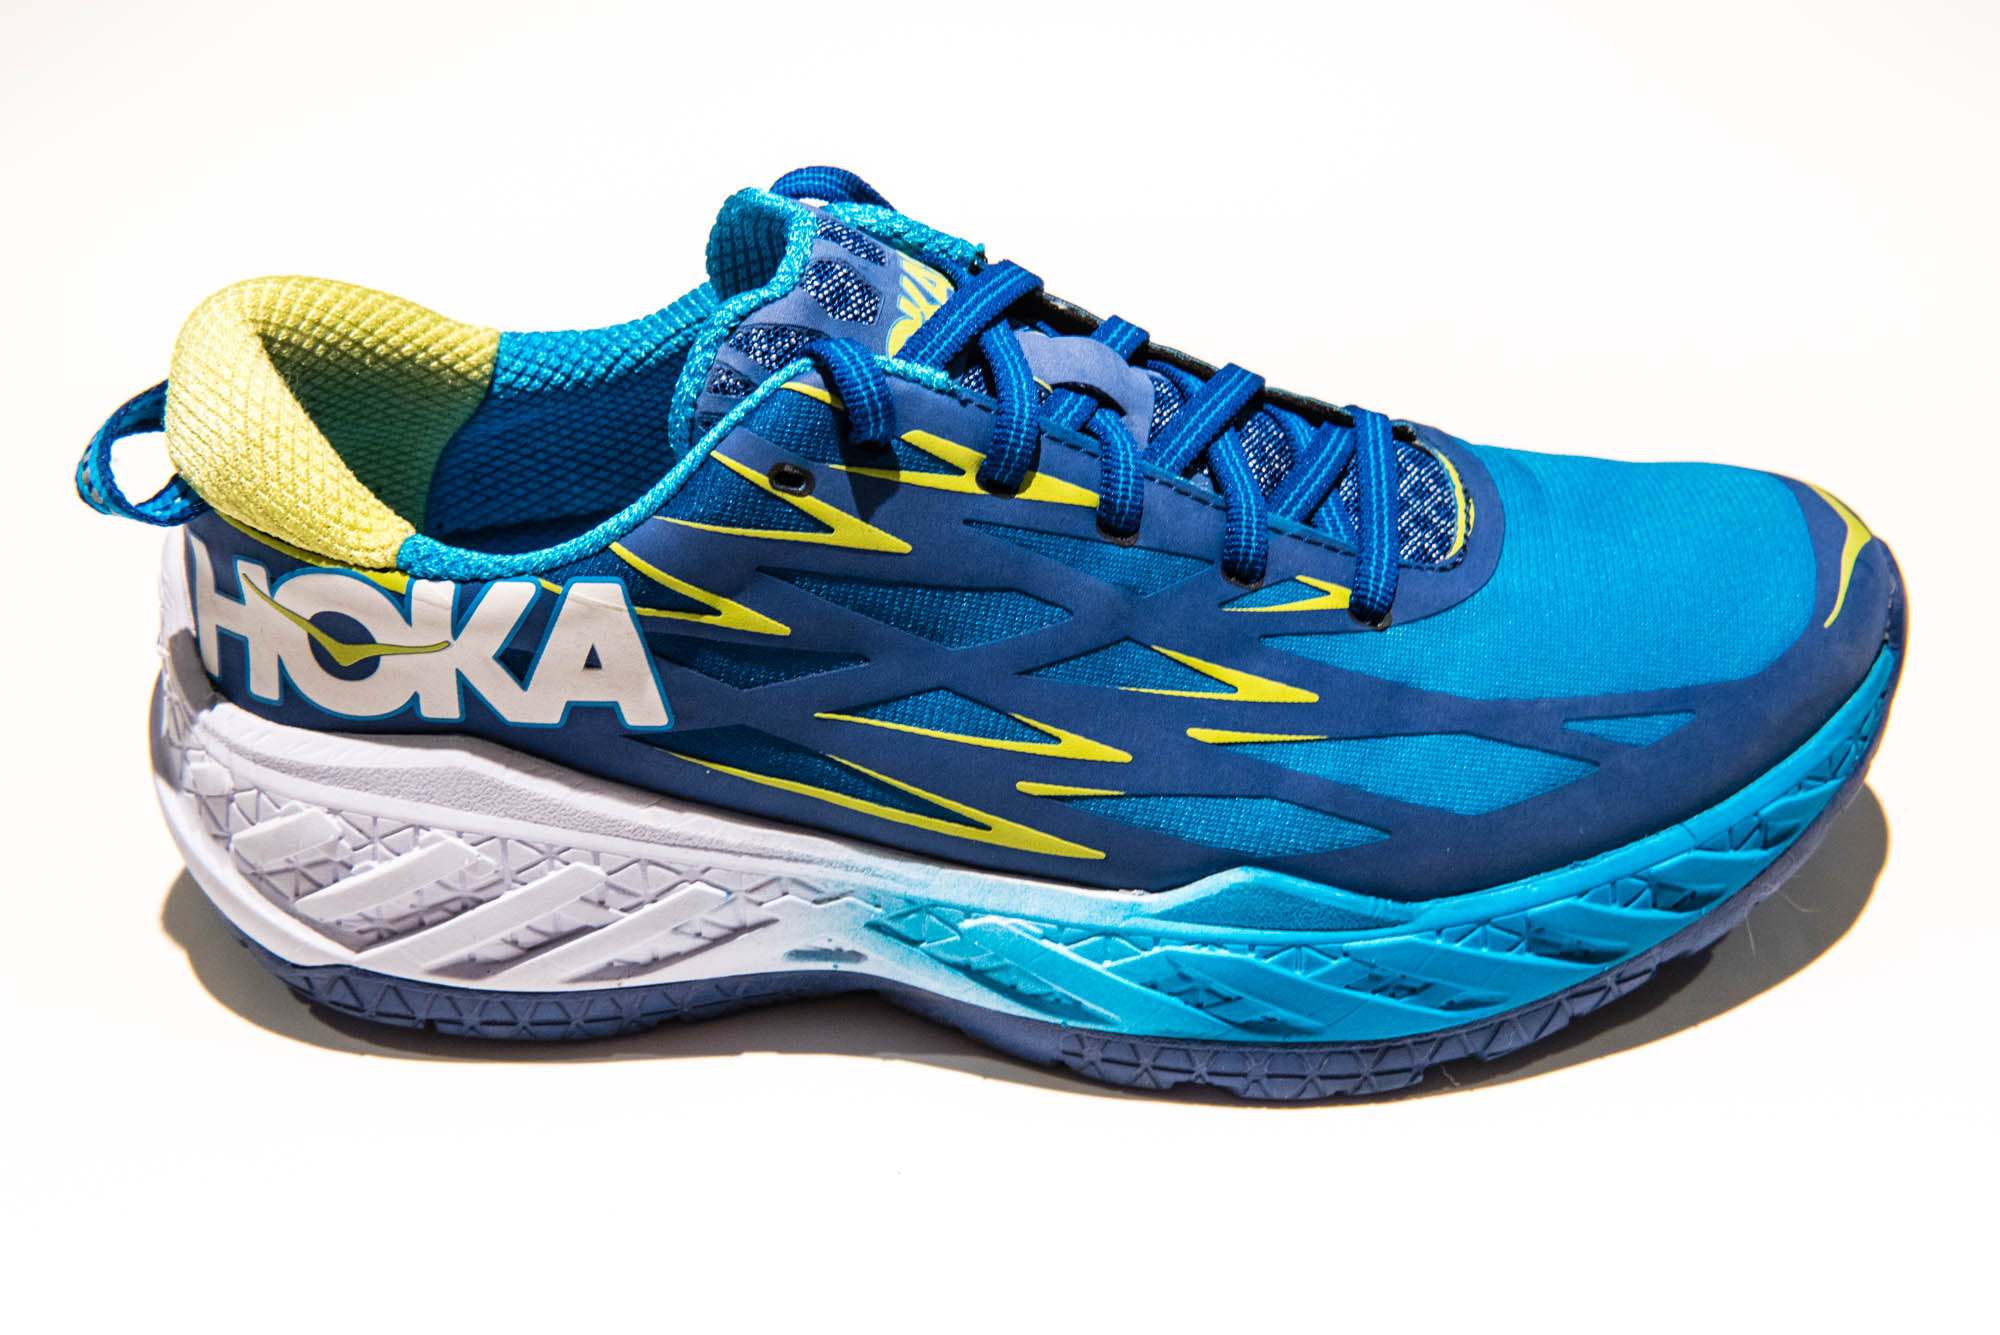 [Test] Hoka One One Clayton